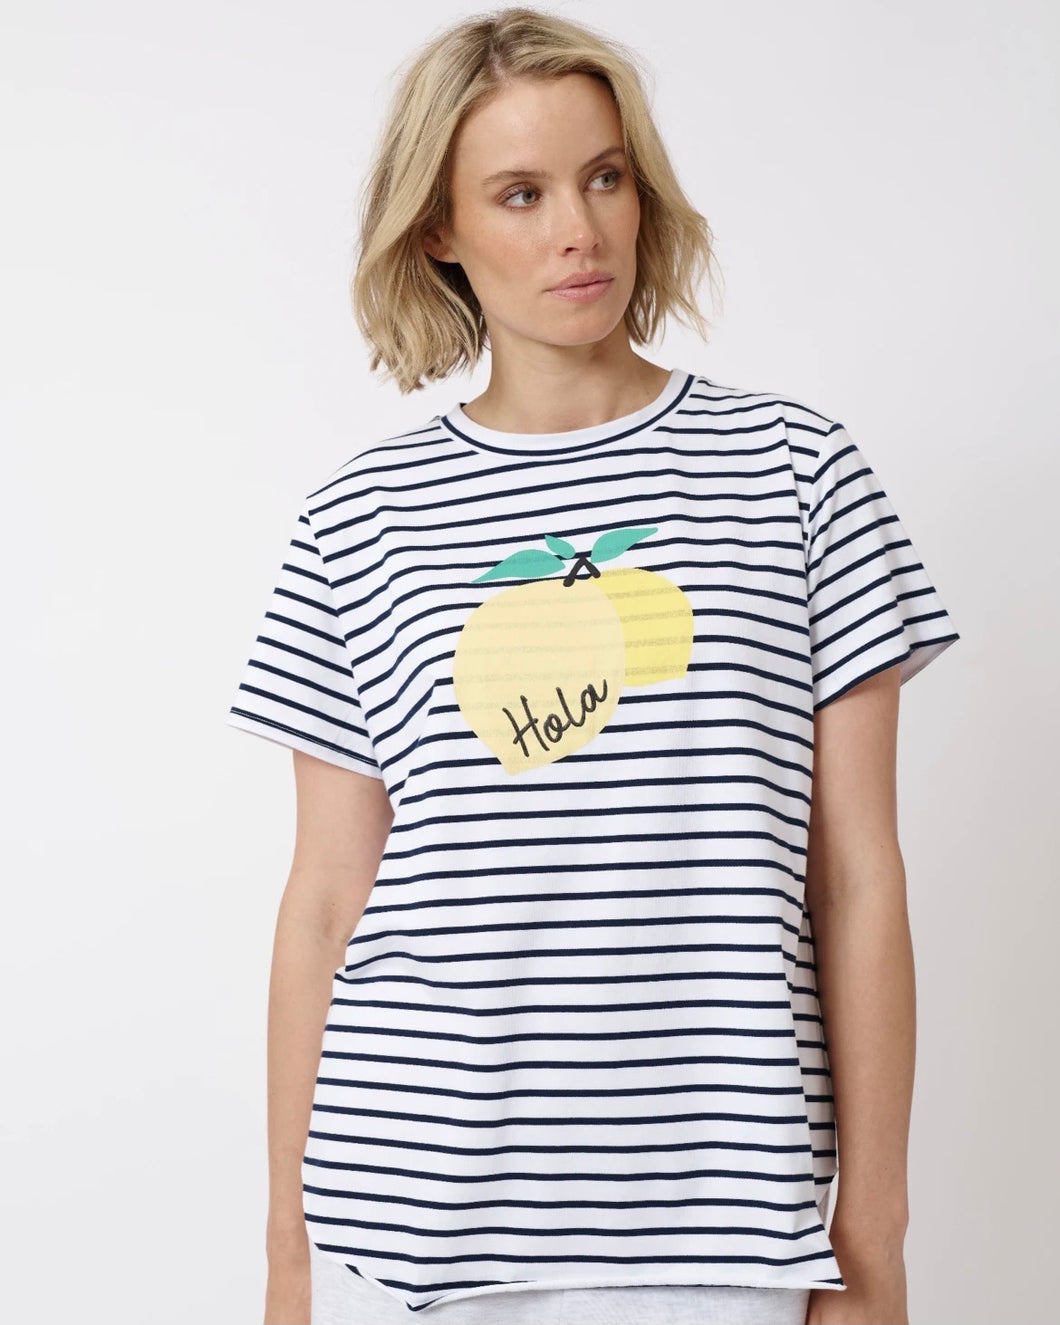 Hola Lemon Tee in White/Navy by Alessandra